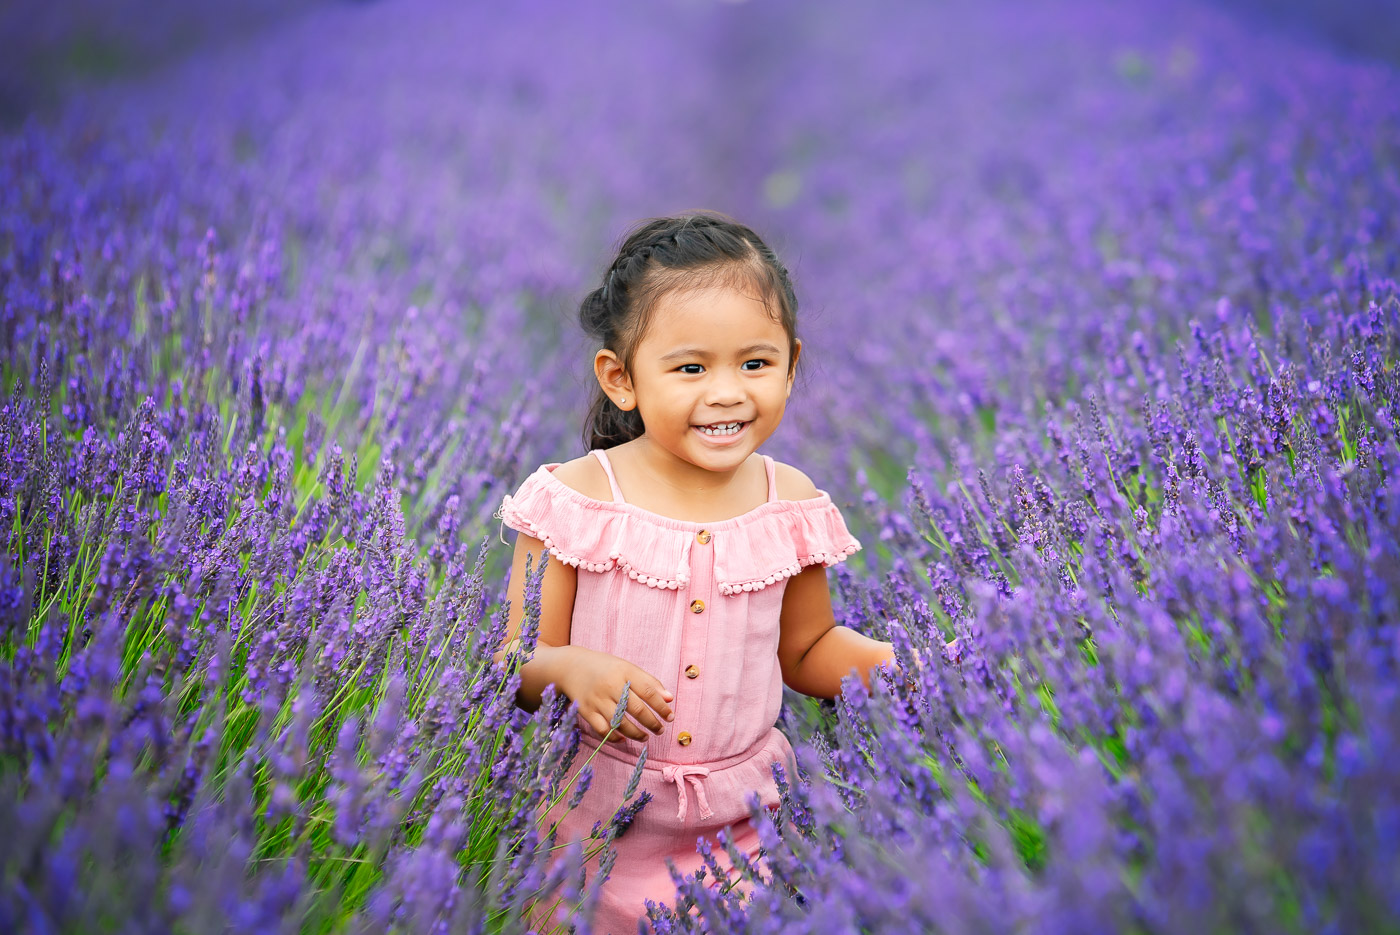 Young lovely girl running through purple field in beautiful pastel rose dress